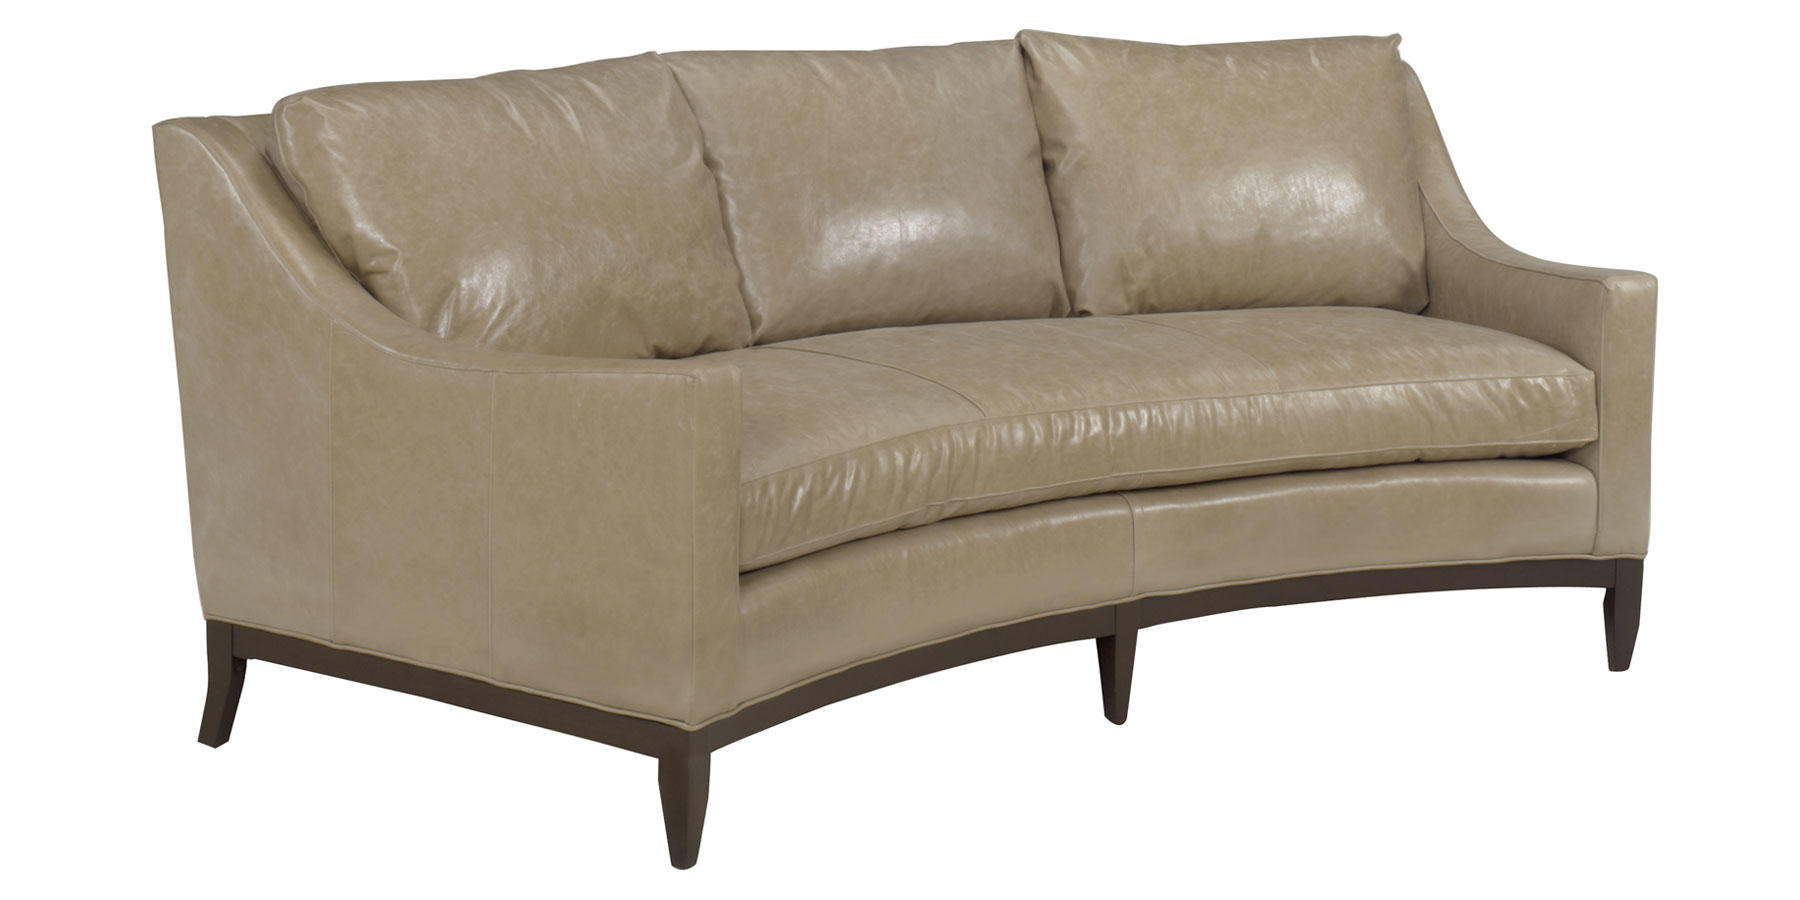 Cedric Quot Designer Style Curved Conversation Sofa Leather